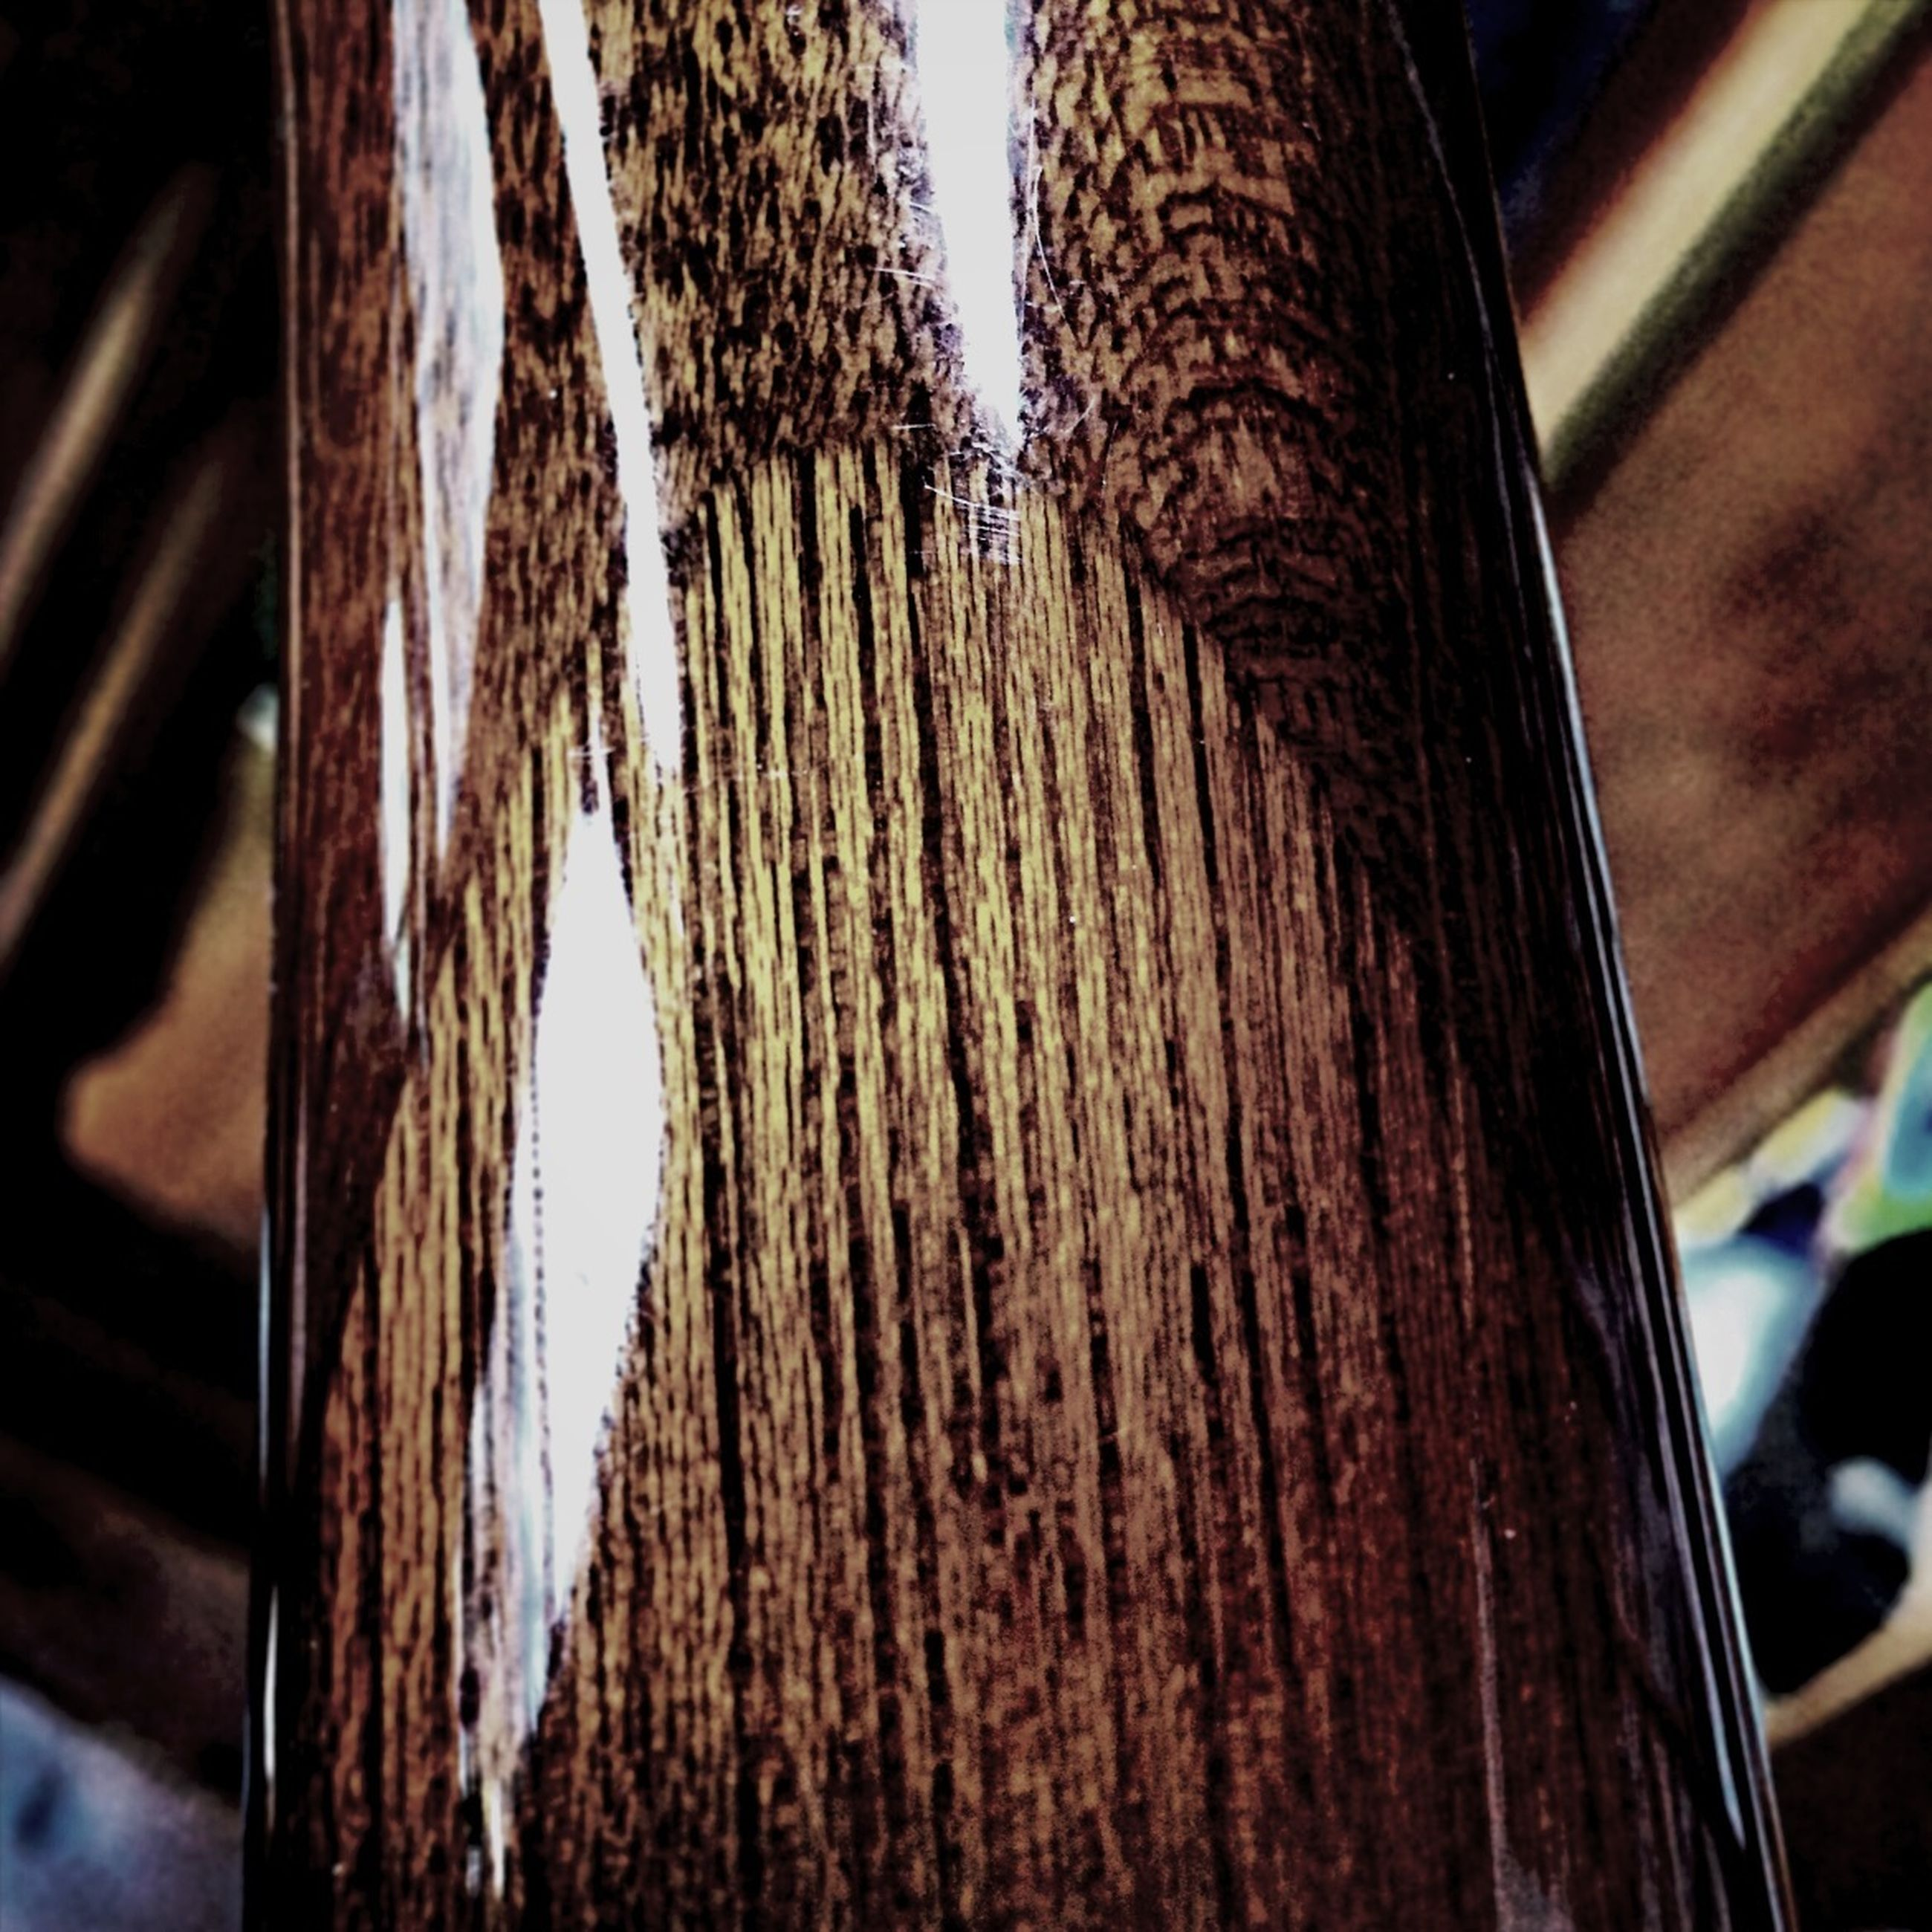 focus on foreground, close-up, hanging, wood - material, pattern, indoors, metal, selective focus, fence, day, protection, no people, safety, rope, sunlight, textured, tree trunk, part of, detail